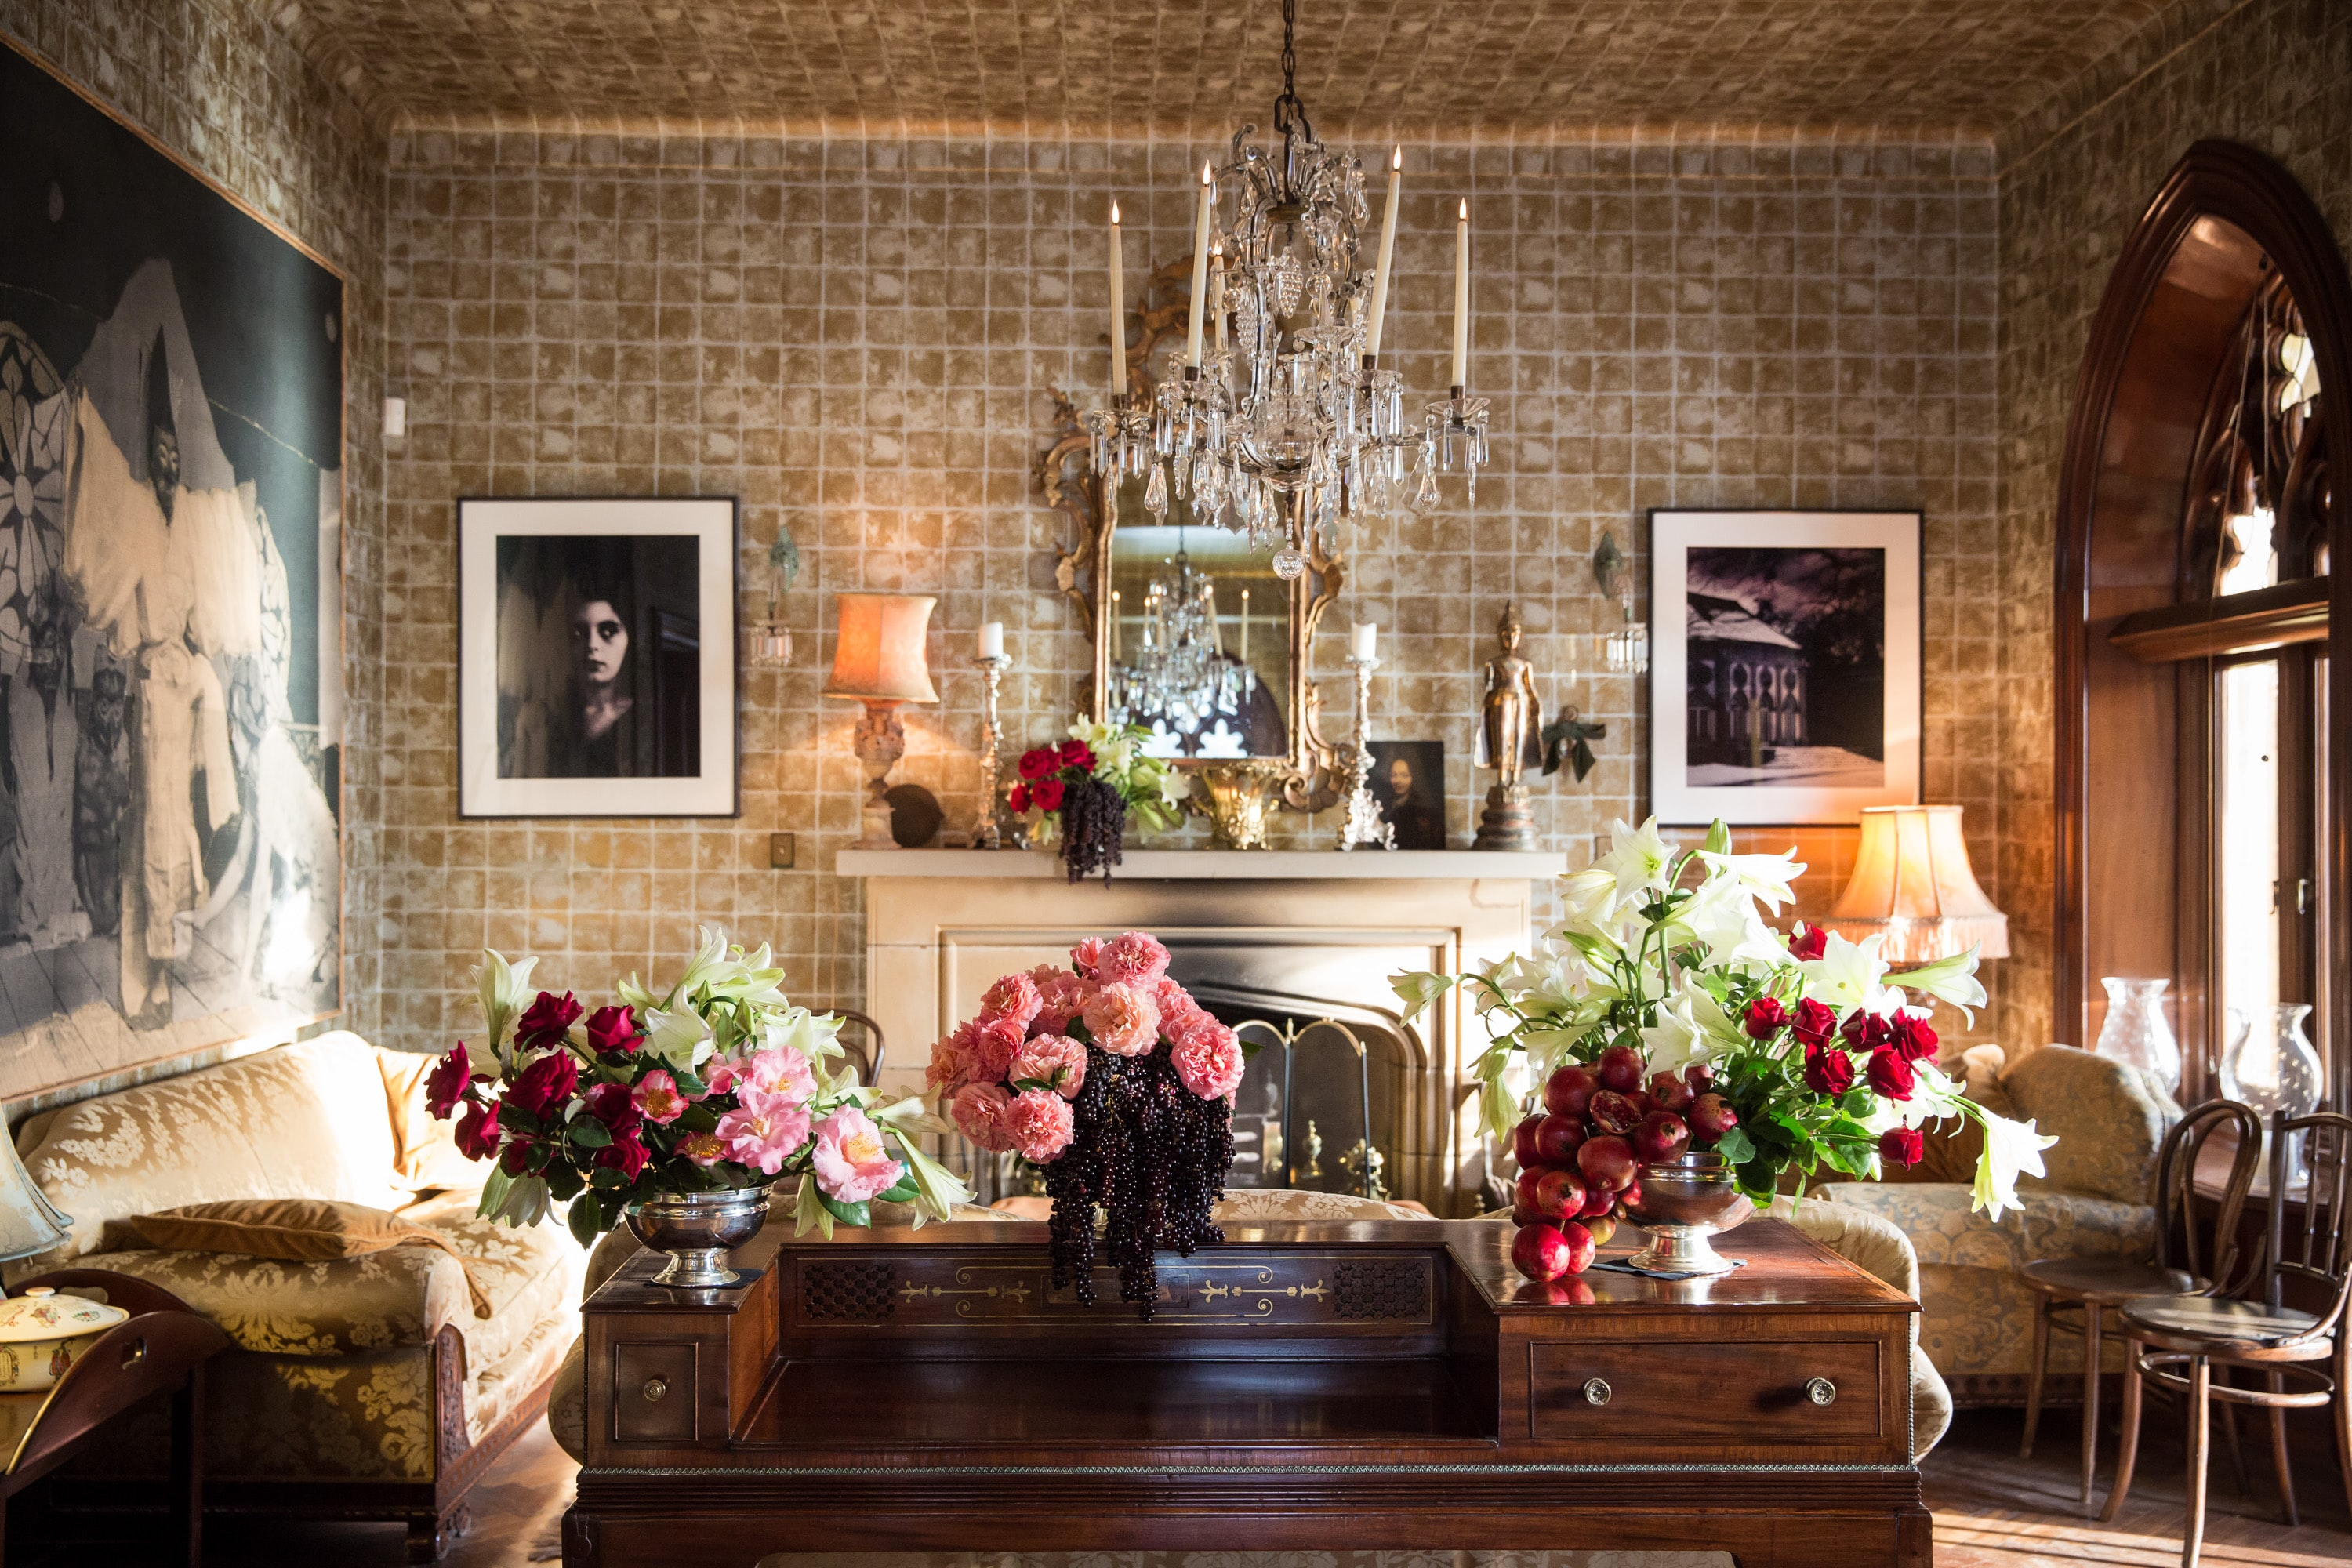 Classic antique residential interior with flowers on wooden table, chandelier and wall art in Sydney